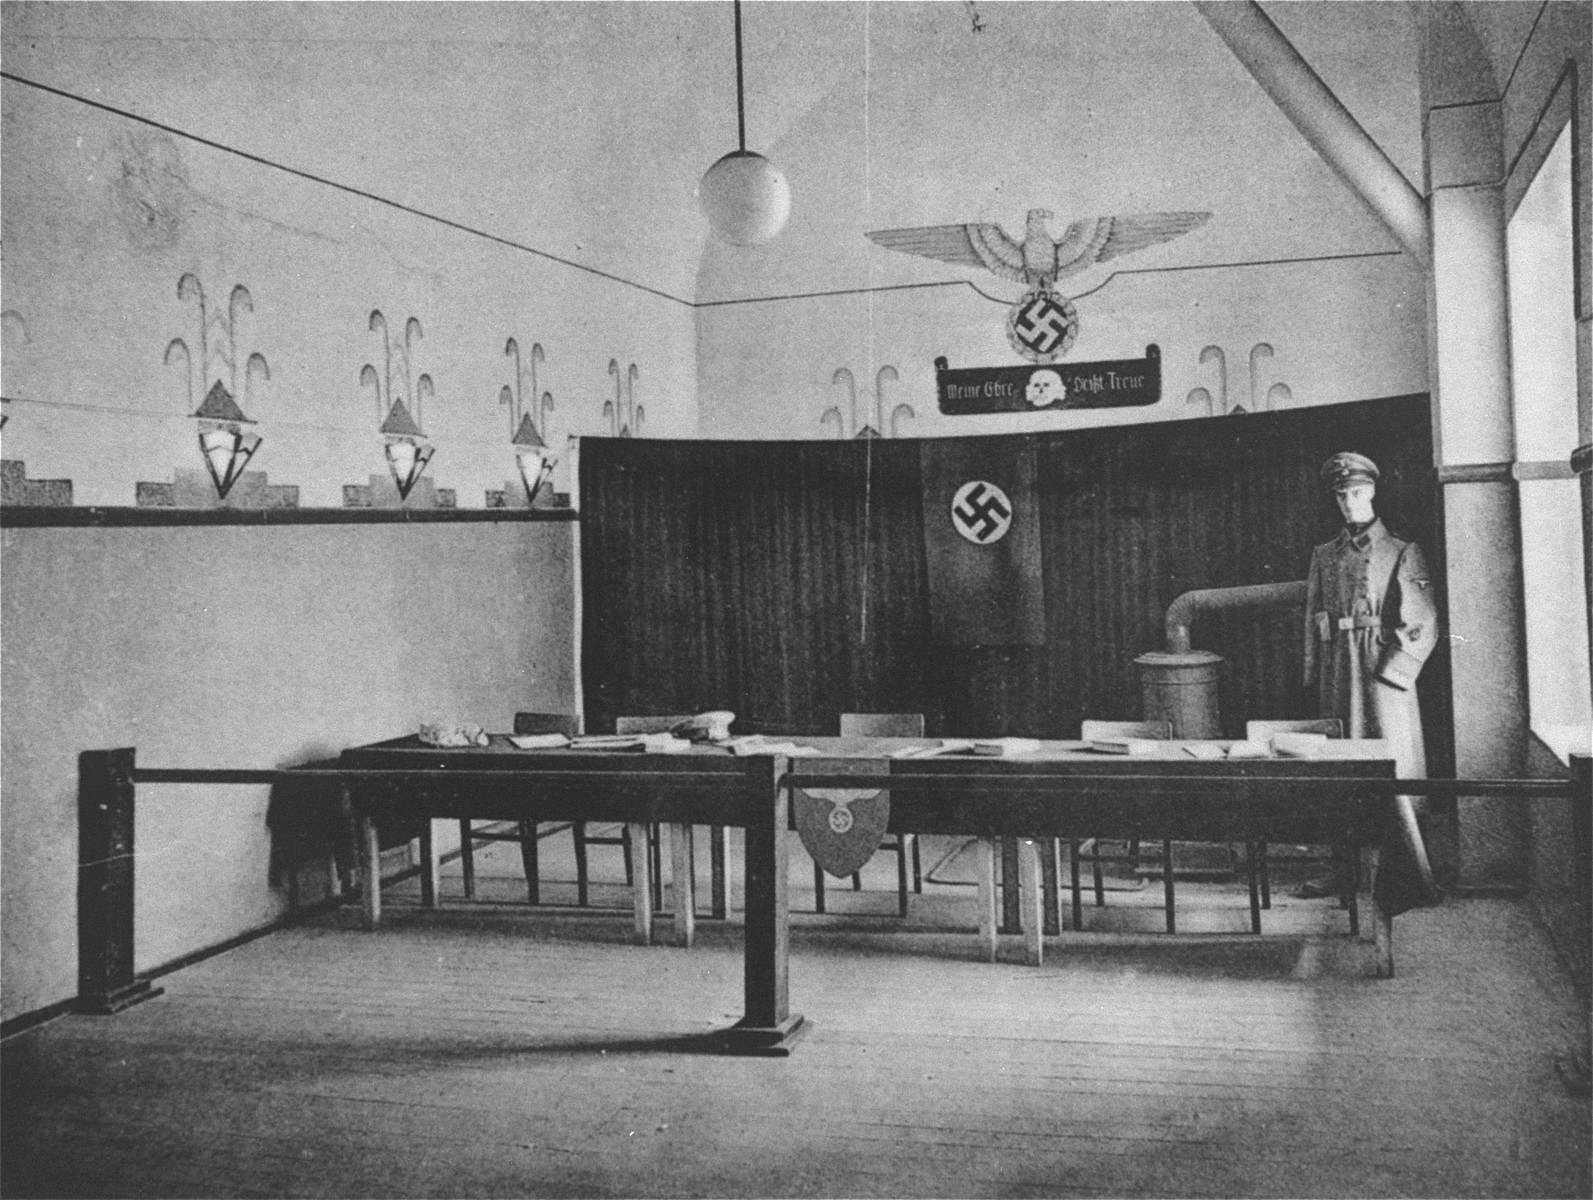 The tribunal room in the fortress prison camp of Breendonck some months after liberation.  It has been decorated with swastikas and other symbols of the Third Reich, as well as with a mannequin wearing an SD uniform.